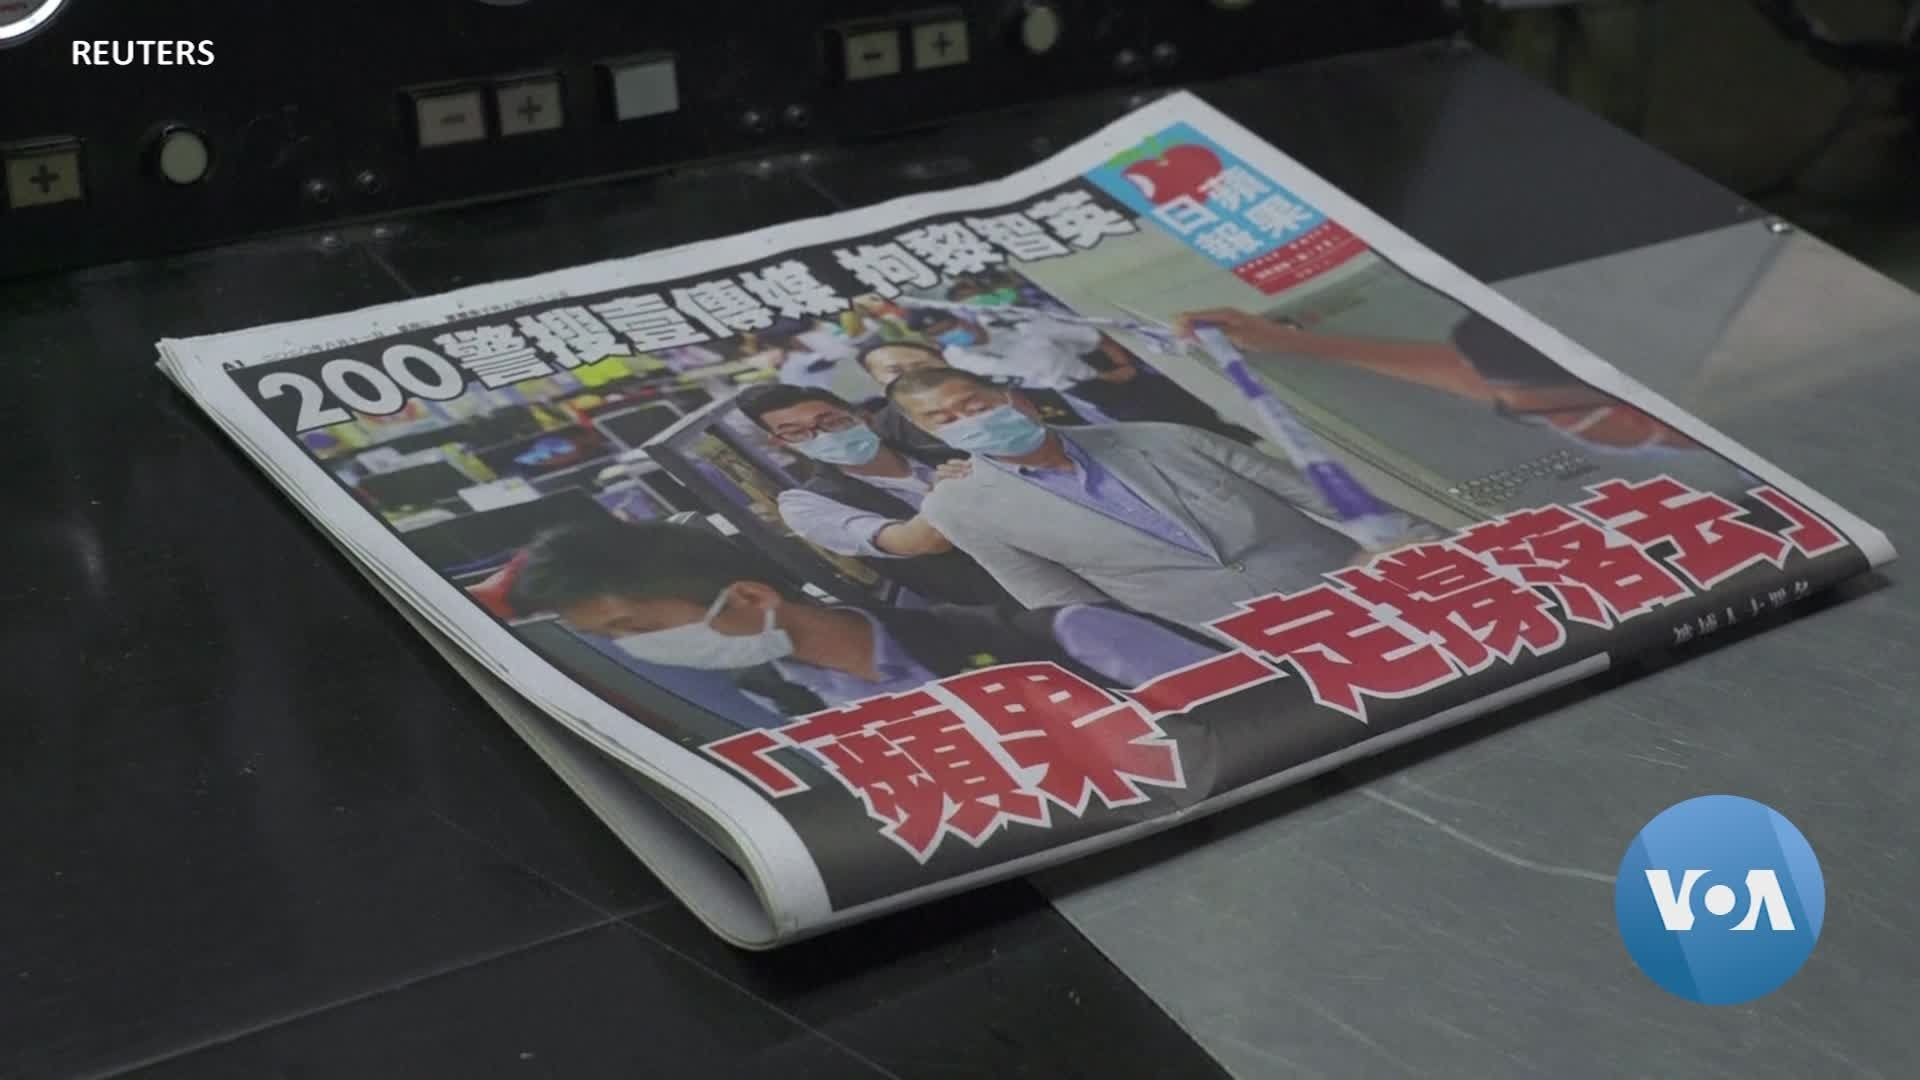 Arrest of Hong Kong Tabloid Owner Makes Front Page News